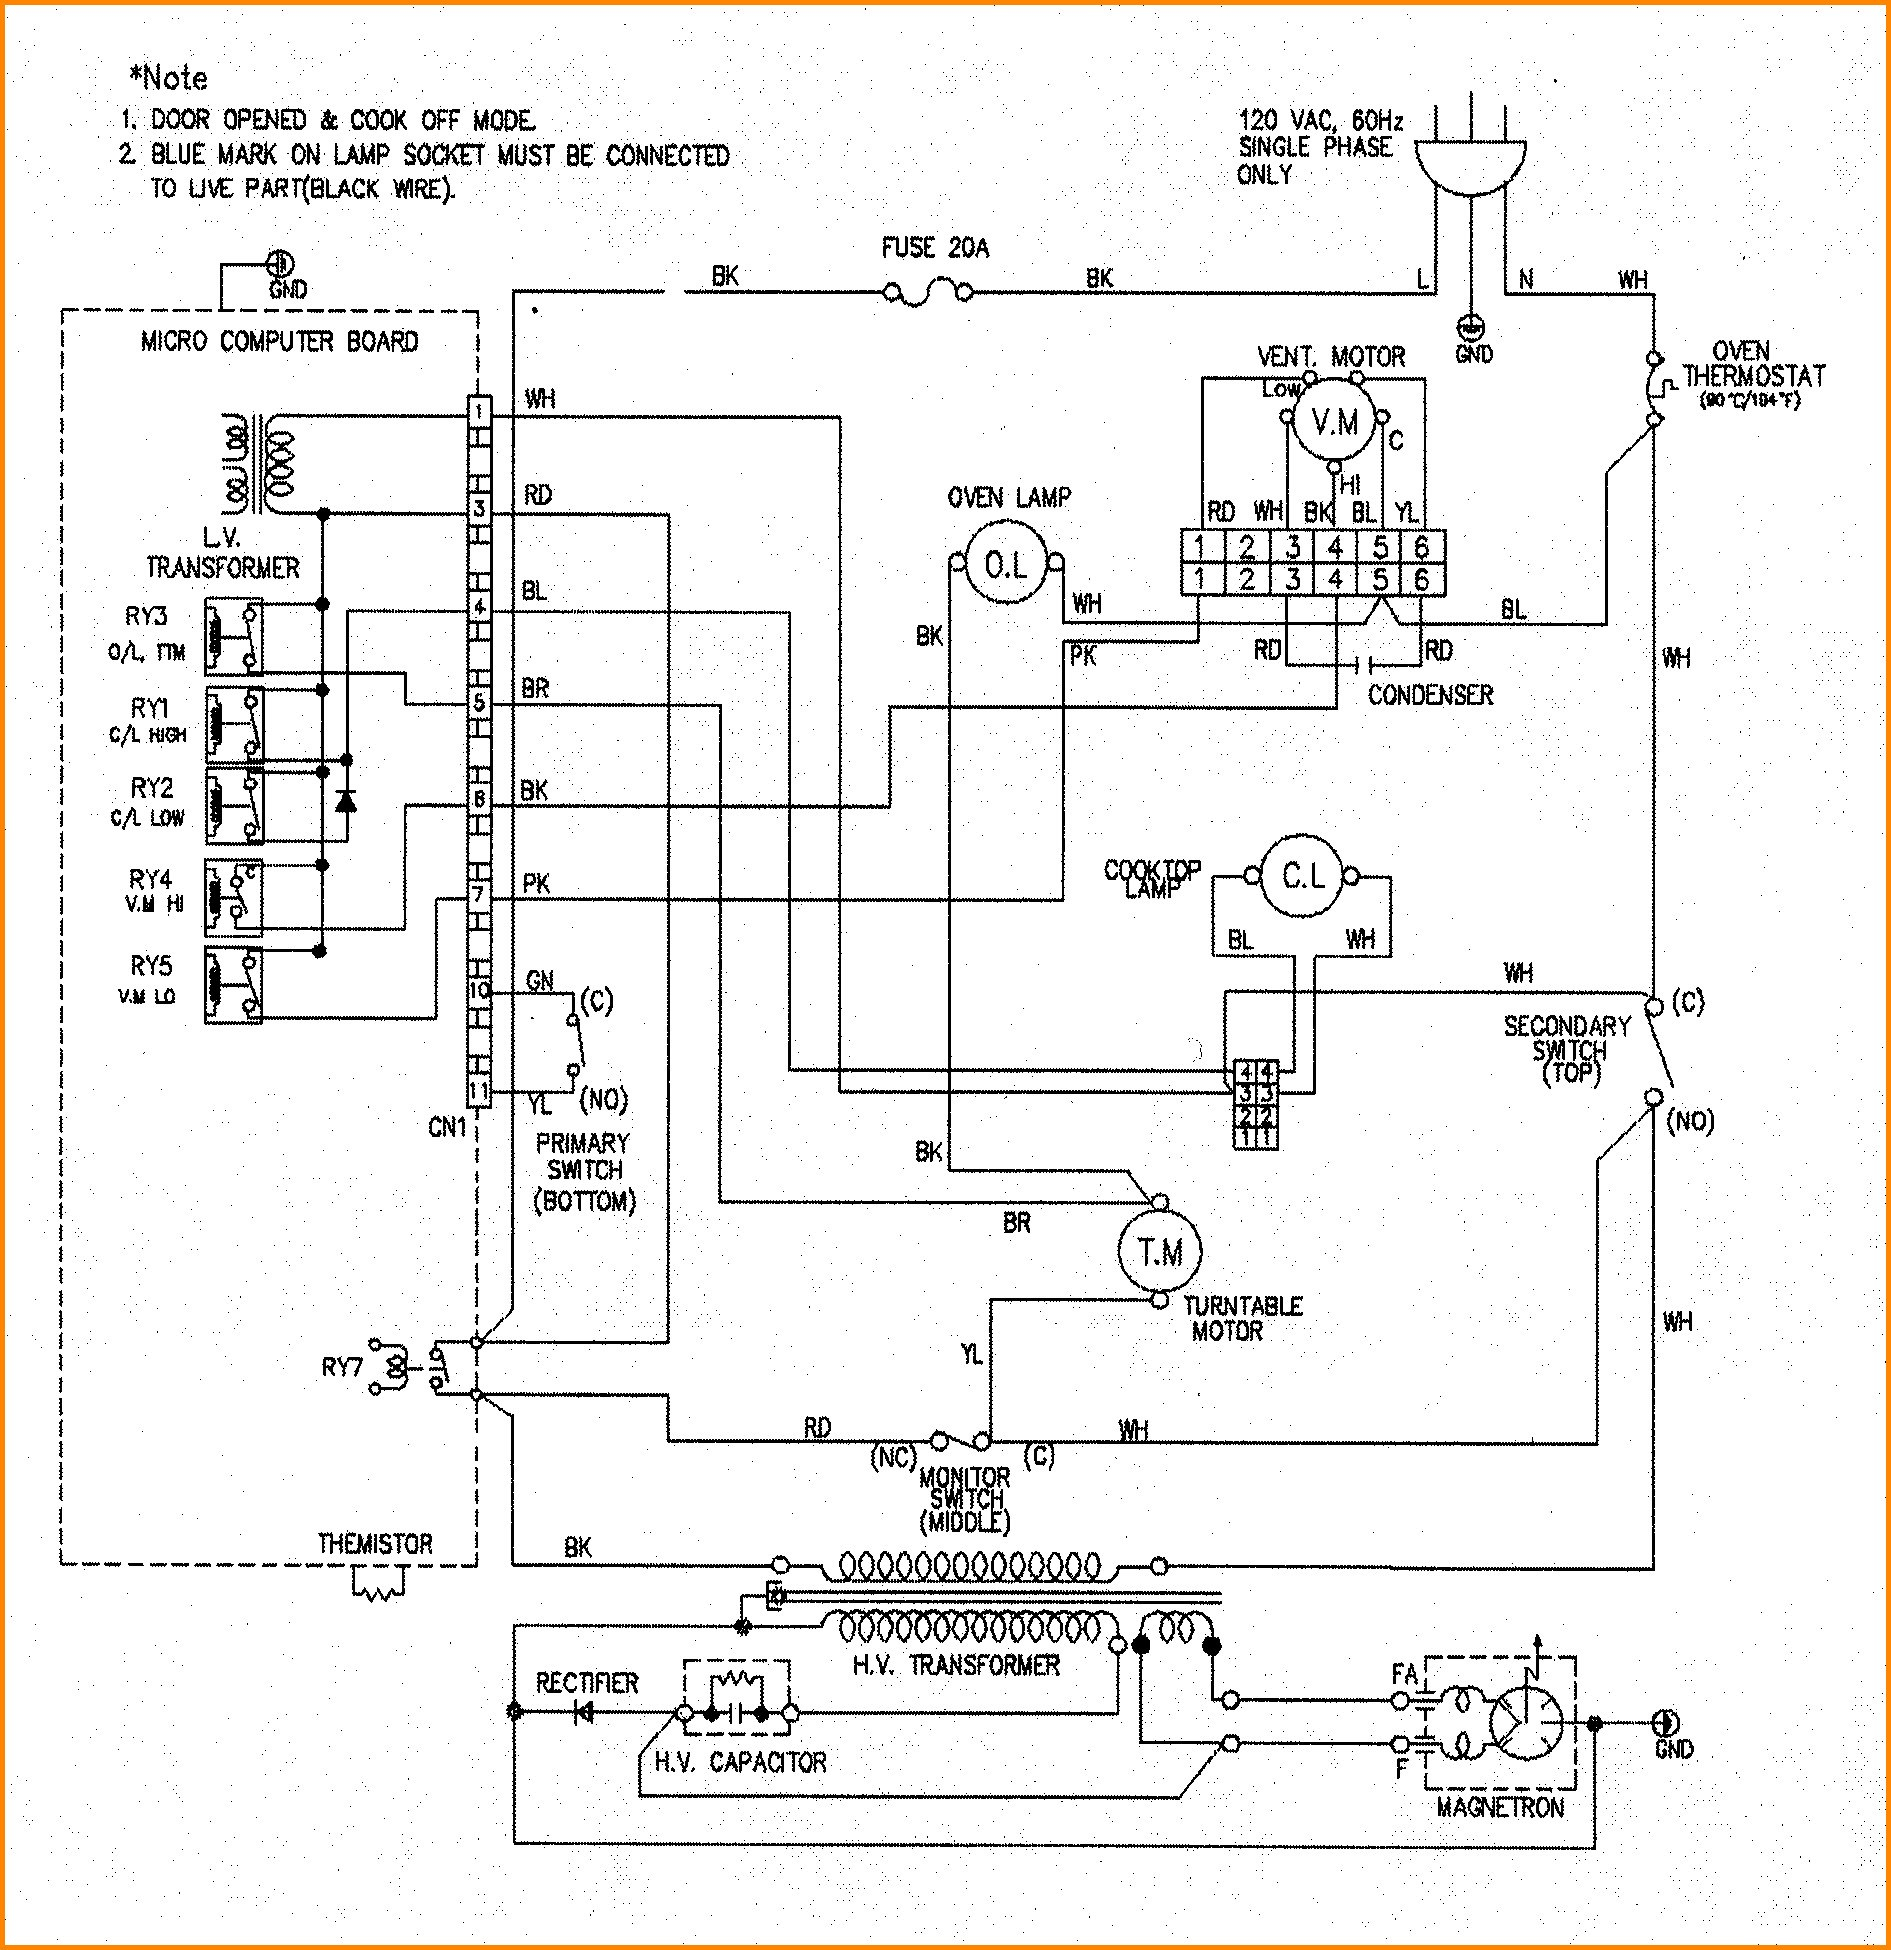 Ge Spectra Wiring Diagram Schematics Diagrams Dryer Get Free Image About Moreover 3 Wire Schematic Jbp80wof2ww Diy Enthusiasts U2022 Rh Broadwaycomputers Us